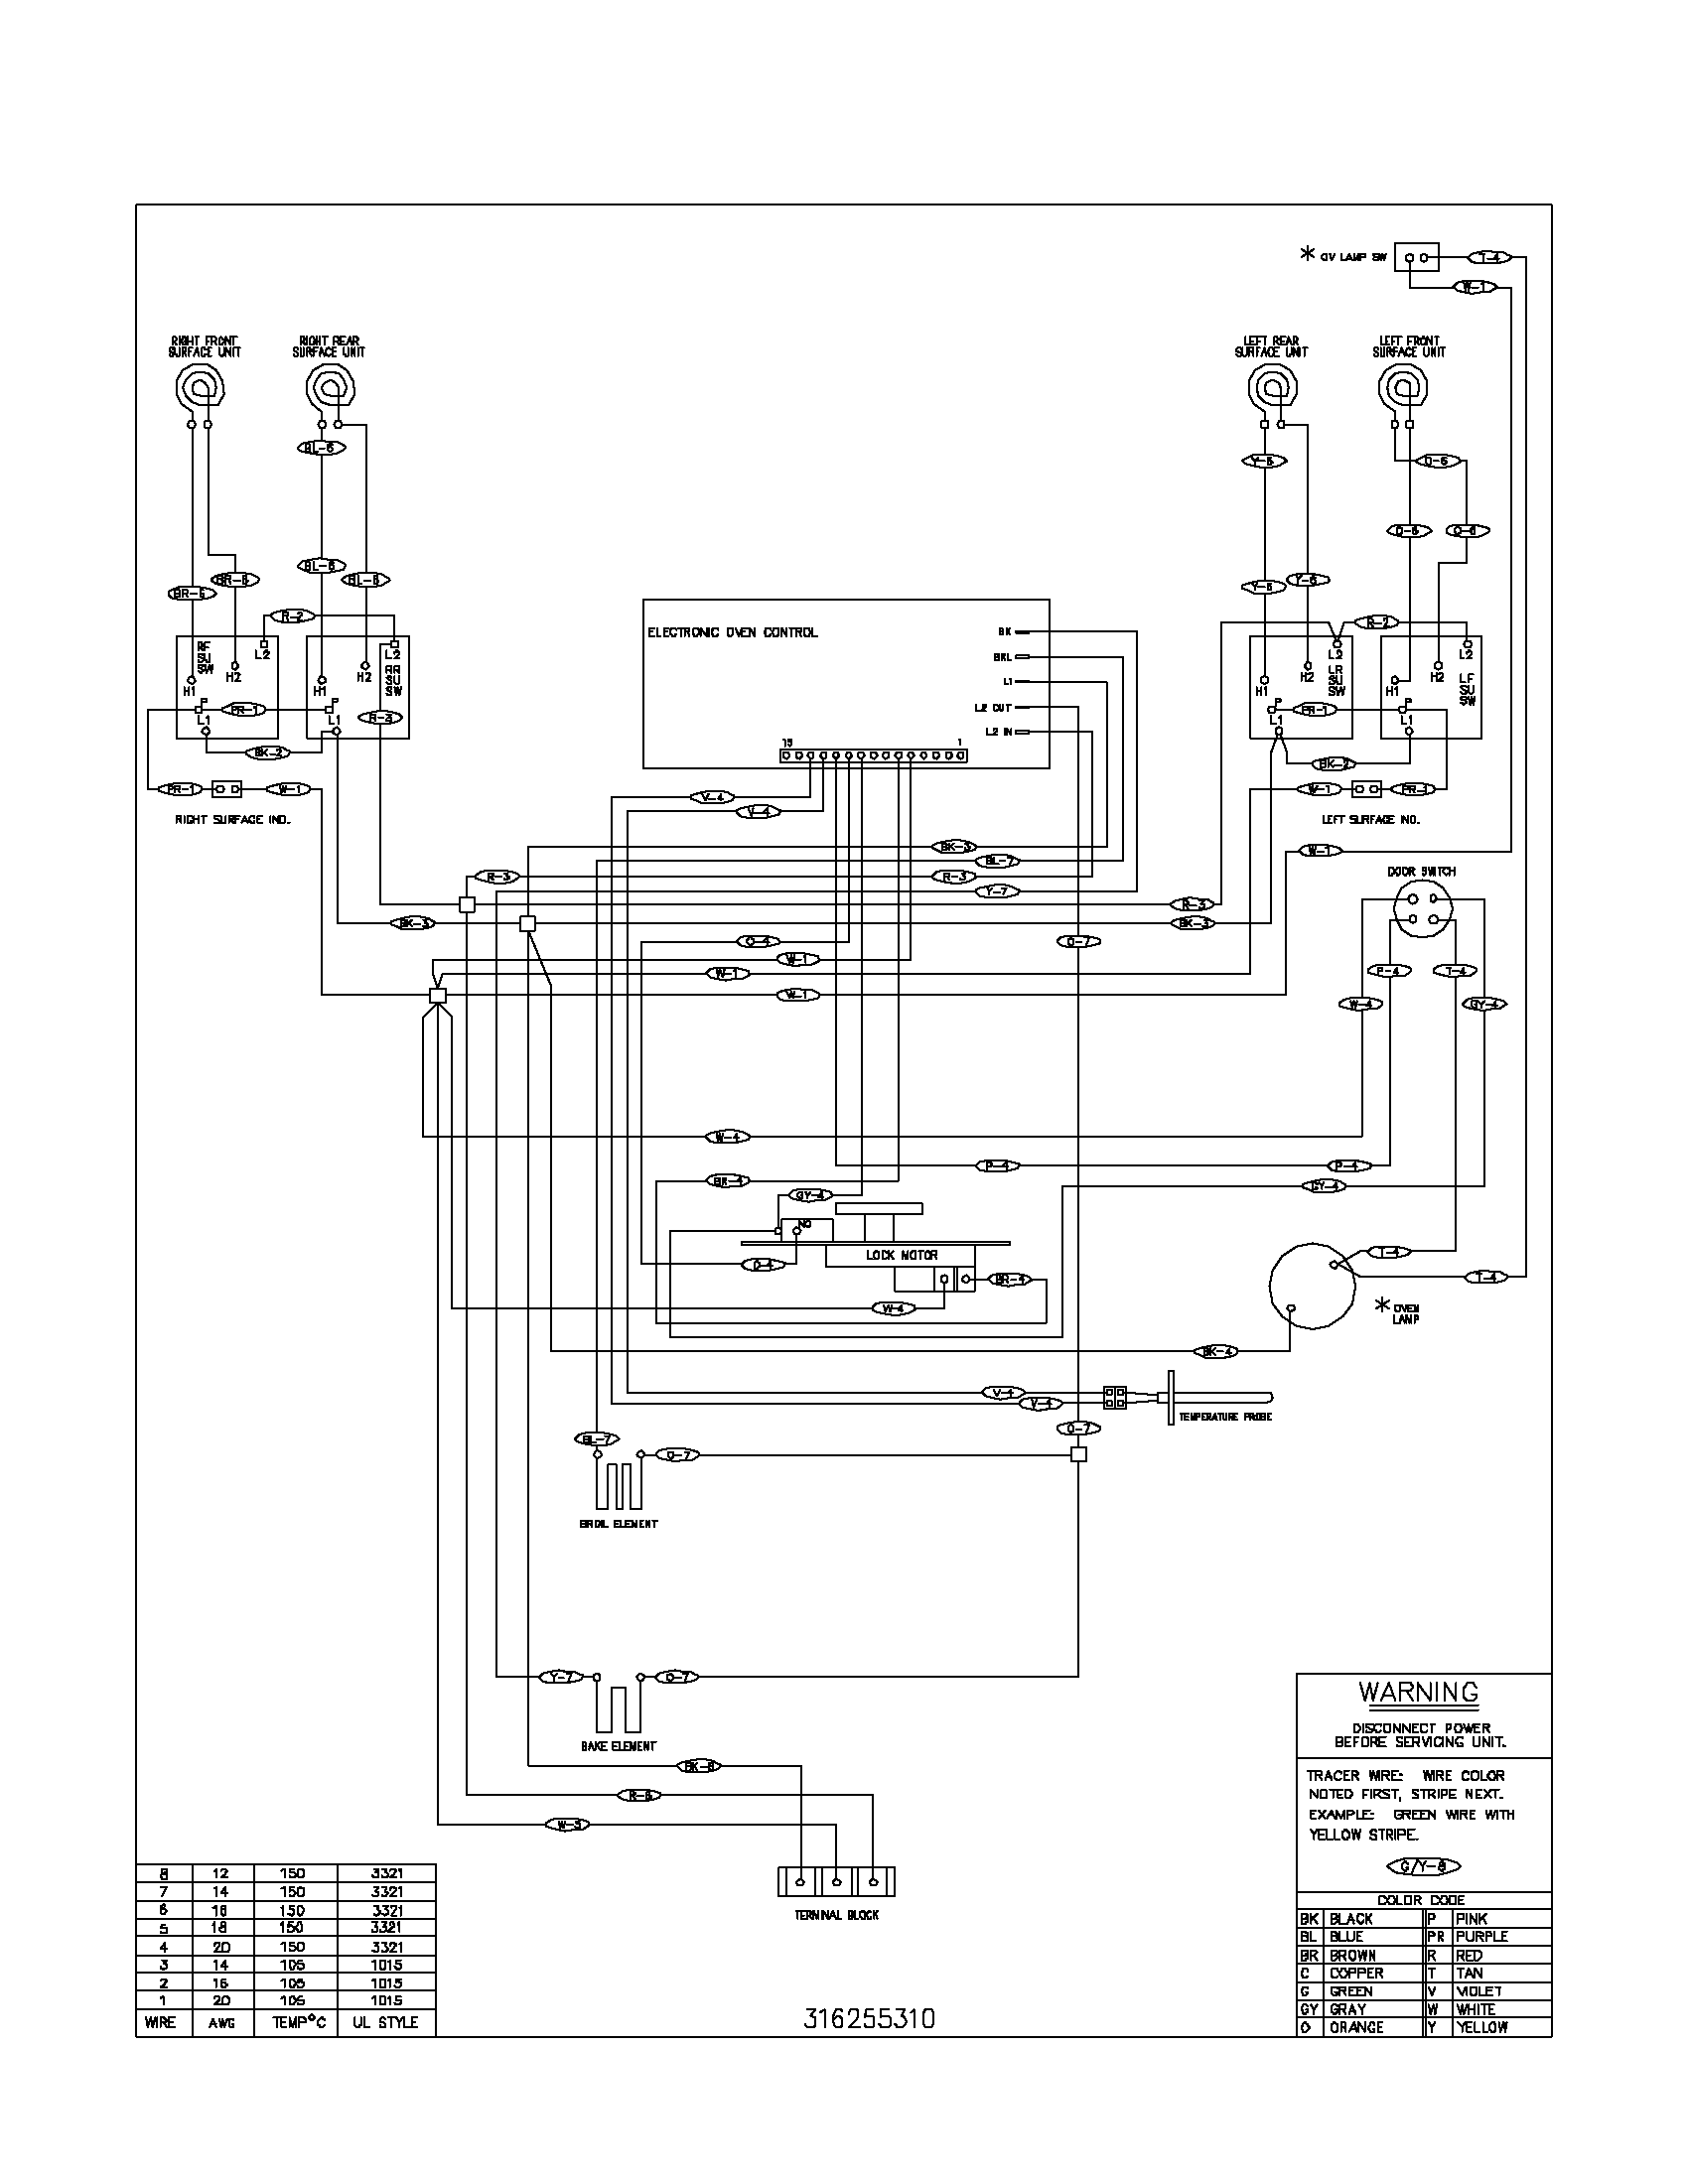 Oven Control Diagram Convection Oven Diagram • Wiring